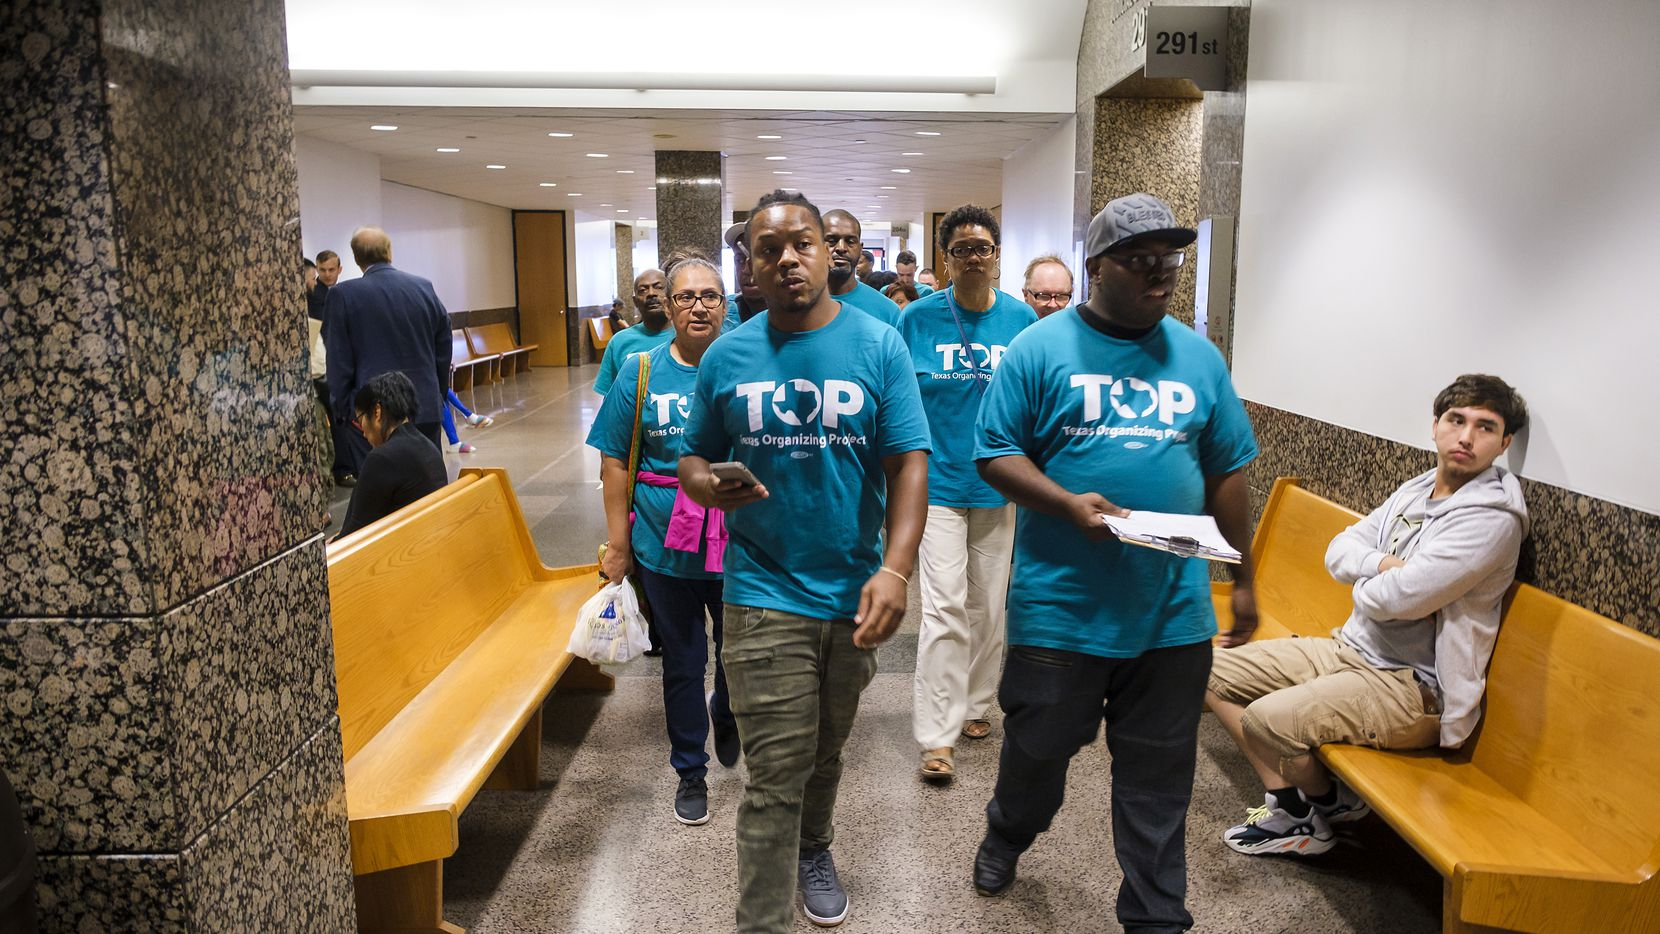 A group of Texas Organizing Project (TOP) representatives visit Dallas County felony court judges at the Frank Crowley Courts Building on Thursday, Oct. 10, 2019, in Dallas. In September 2018, a federal judge ruled against the Dallas County bail system in a lawsuit, stating that the countyÕs bail practices violated people's constitutional rights. Texas Organizing Project Education Fund is a plaintiff in the lawsuit. (Smiley N. Pool/The Dallas Morning News)